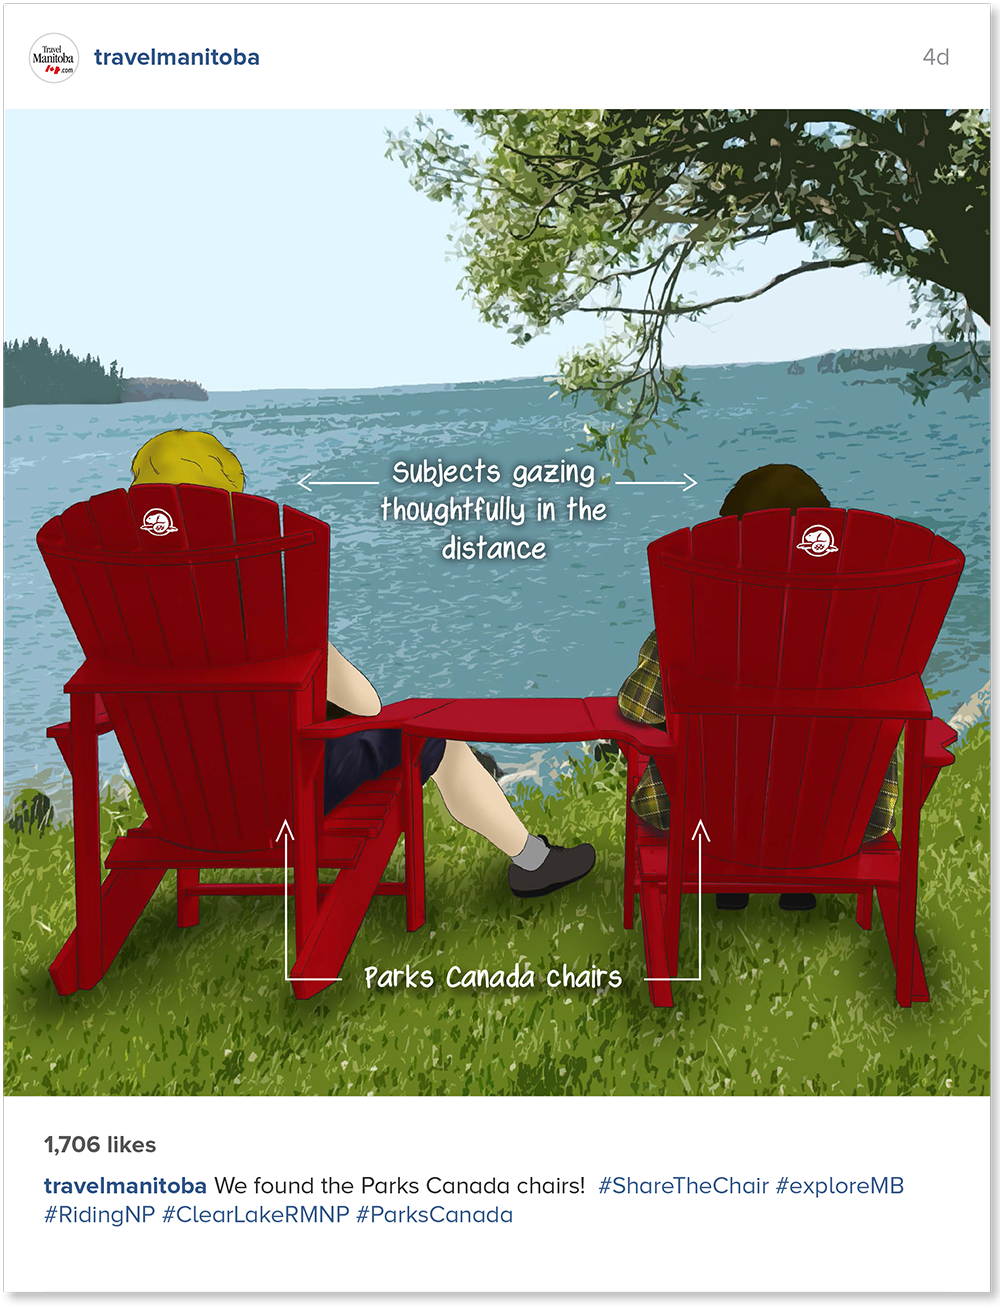 Share the Chair with Parks Canada's Red Chairs